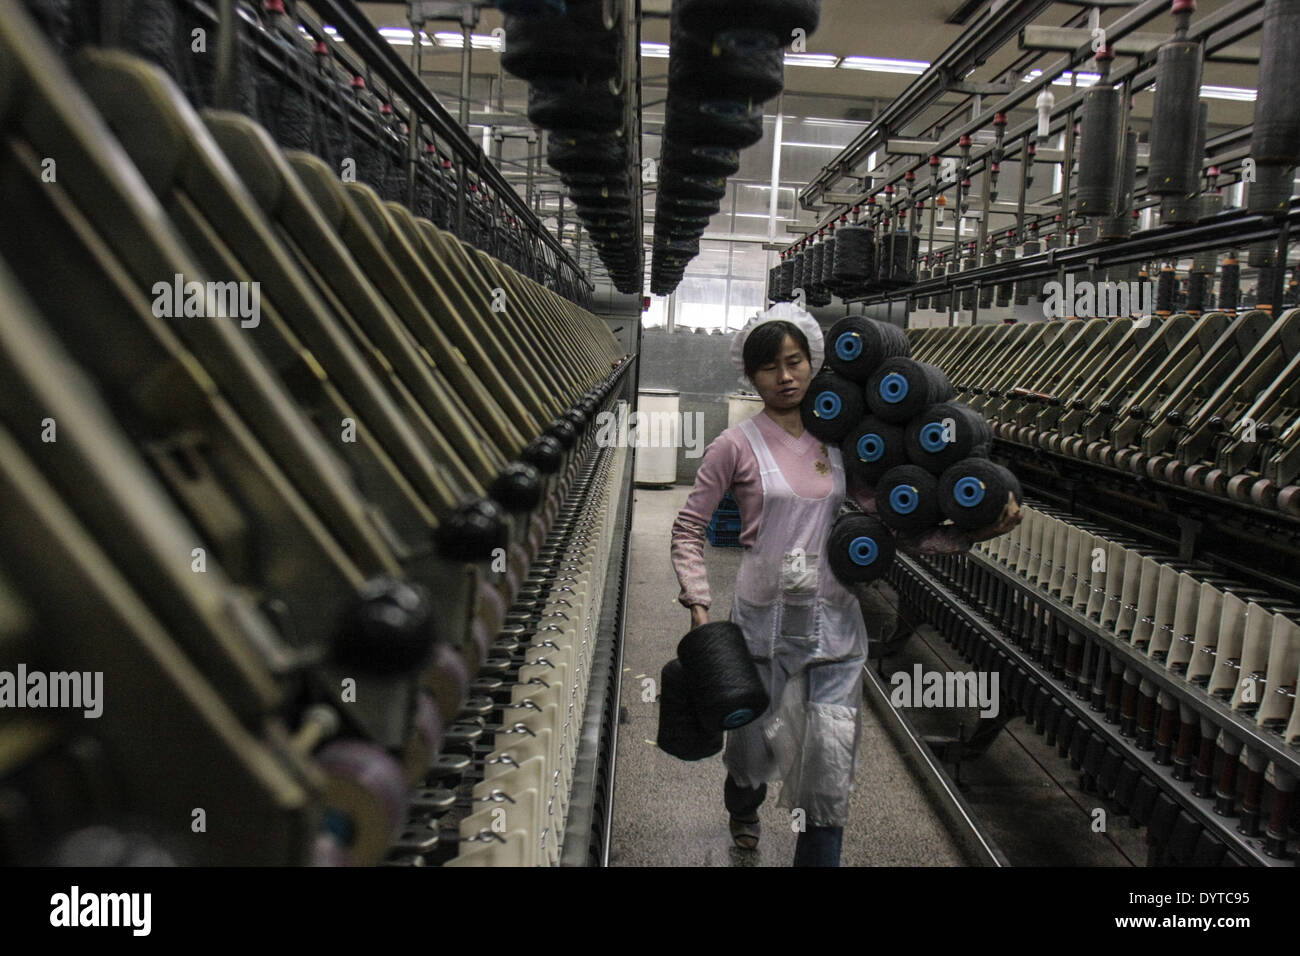 Workers operate a weaving machine at the Jiangsu Sunshine Co - Stock Image